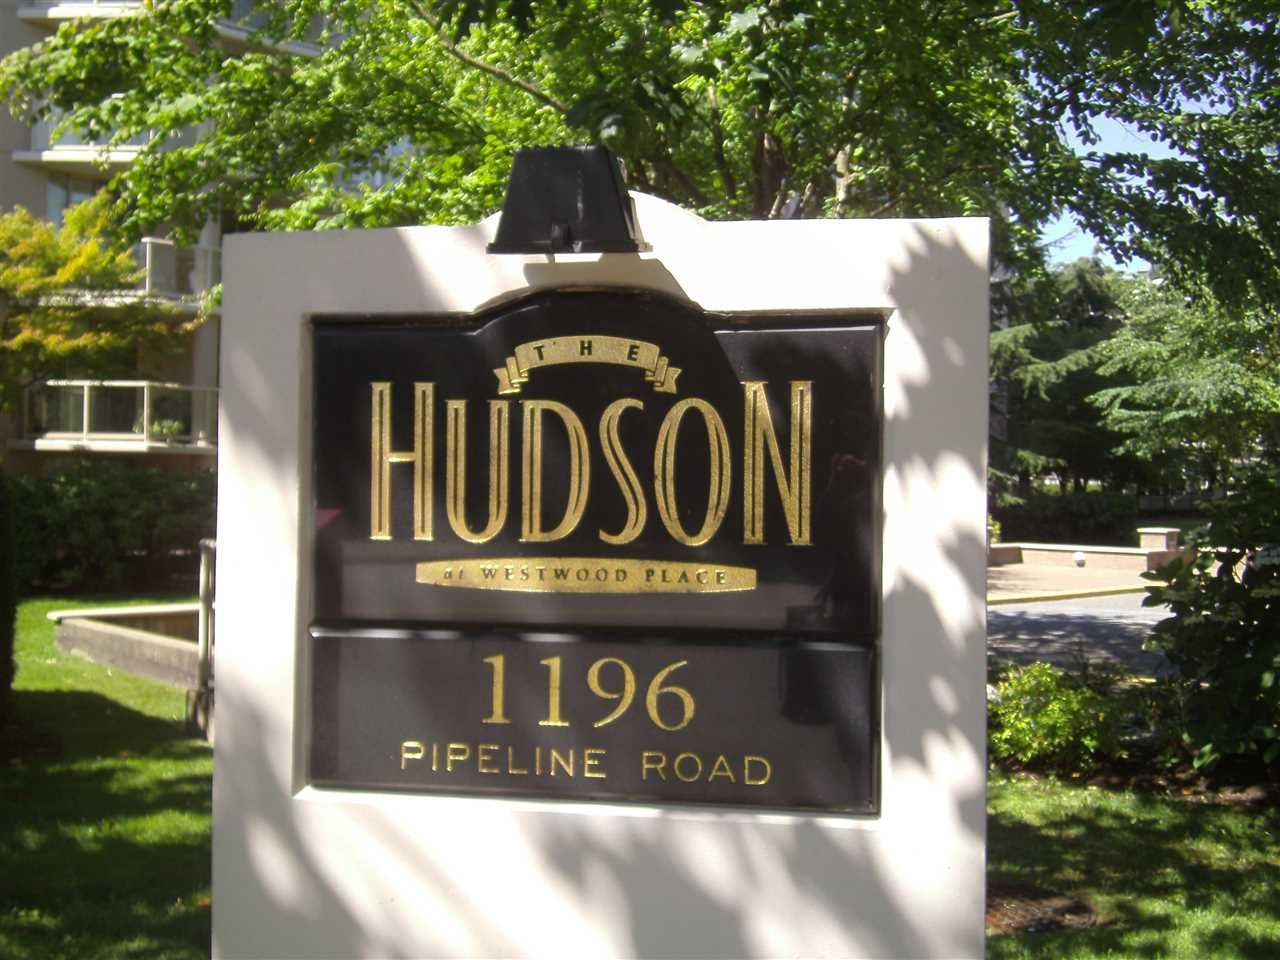 Welcome to the HUDSON!